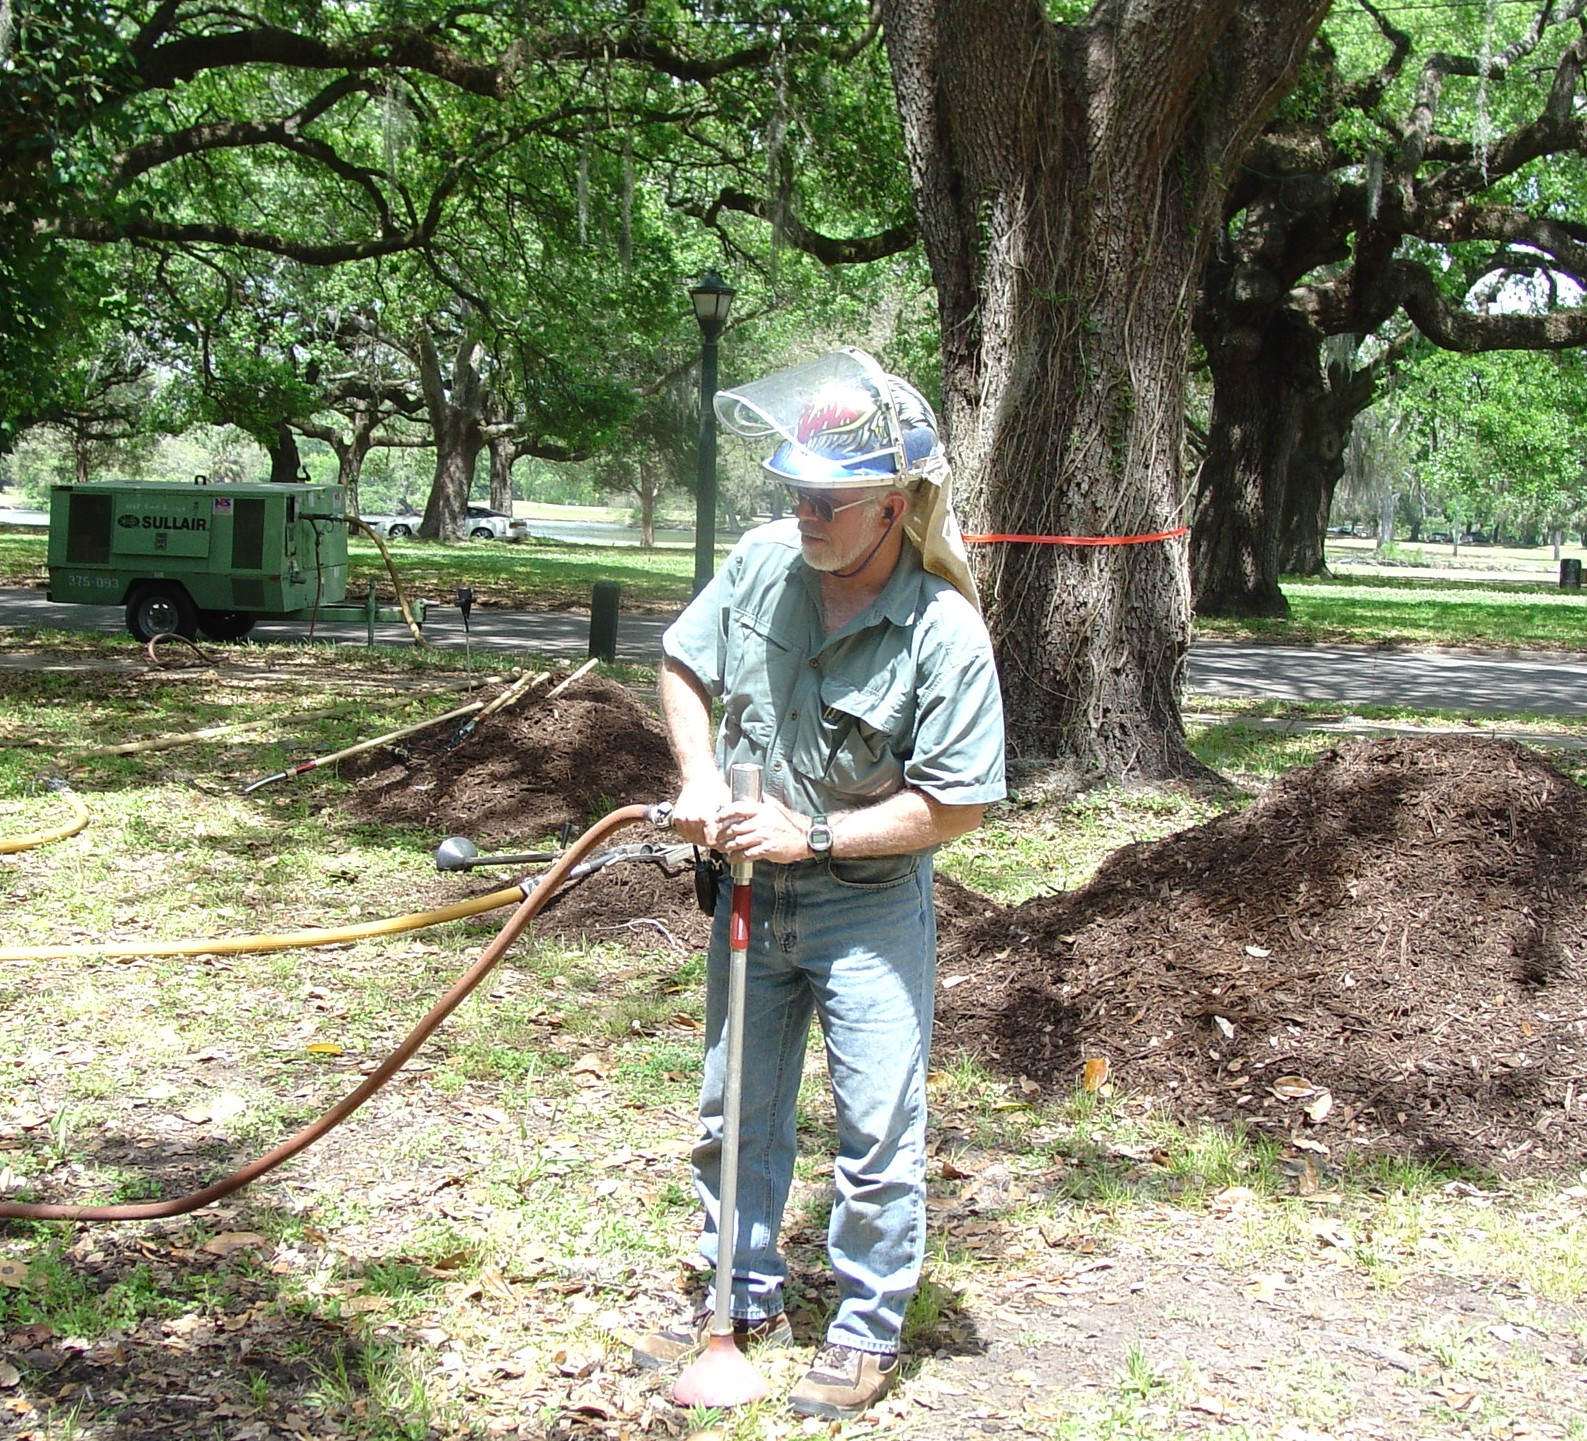 Hire an Arborist for Residential Tree Needs